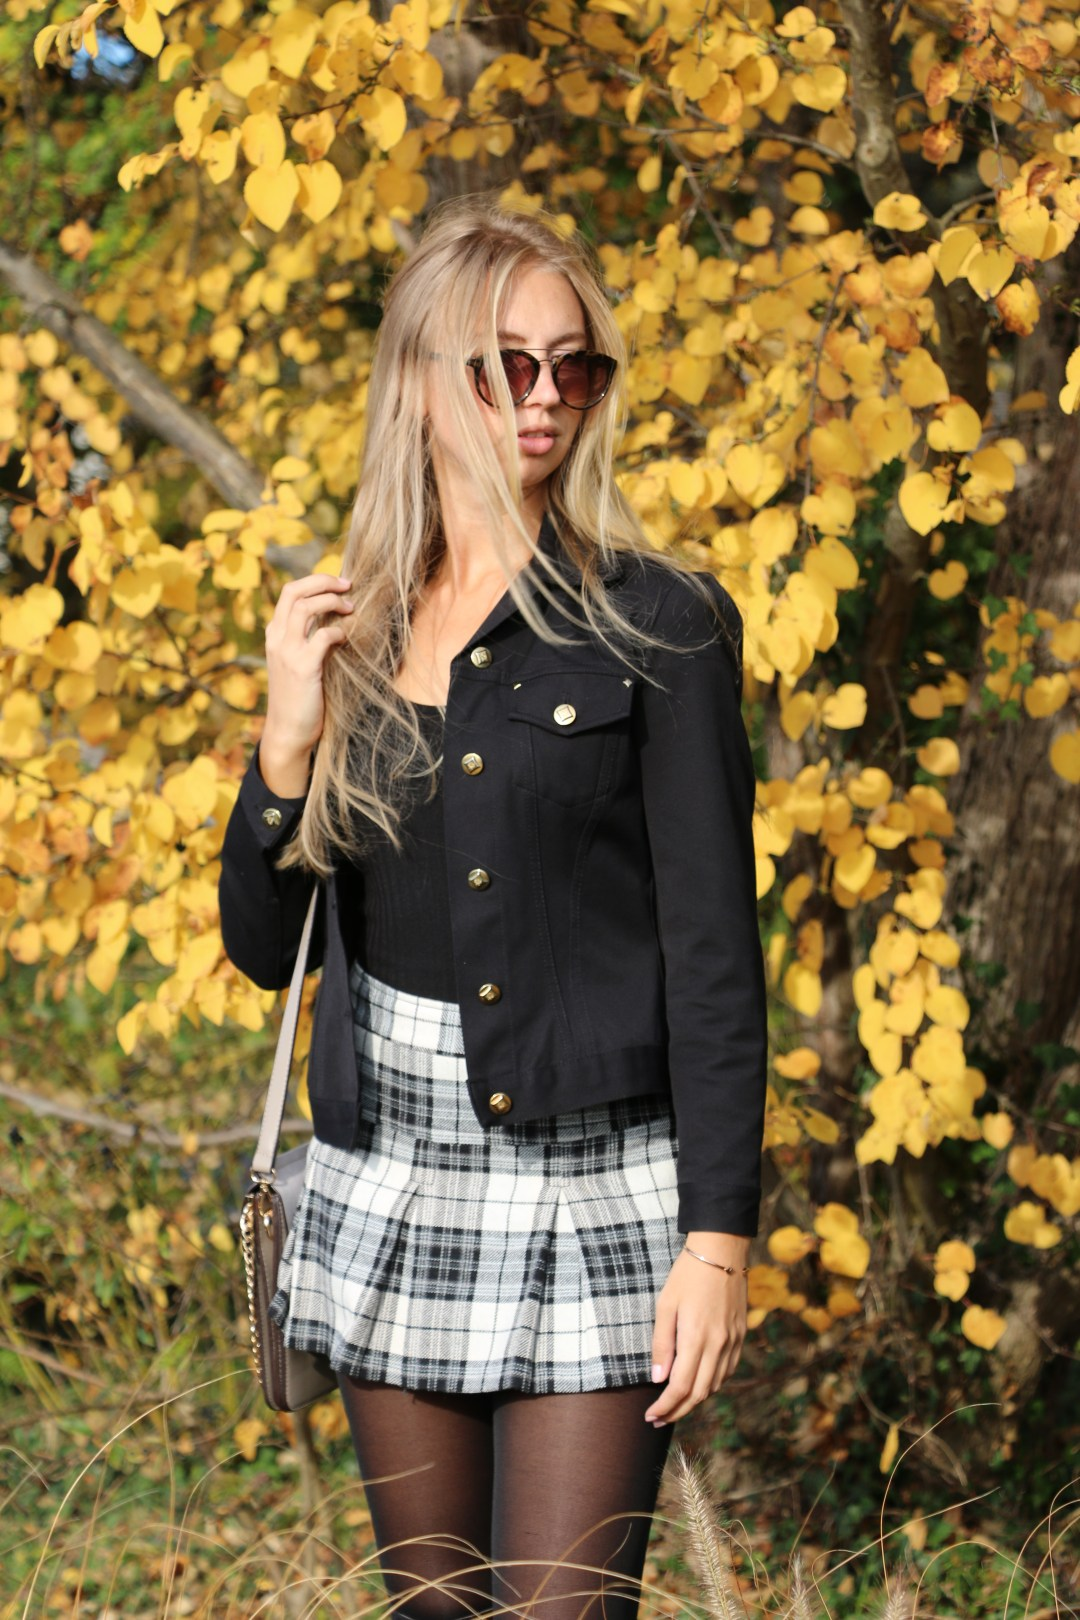 fashion-fall-mode-herbst-rock-overknees-boots-stiefel-rock-outfit-chloe-faye-fashionblog-berlin